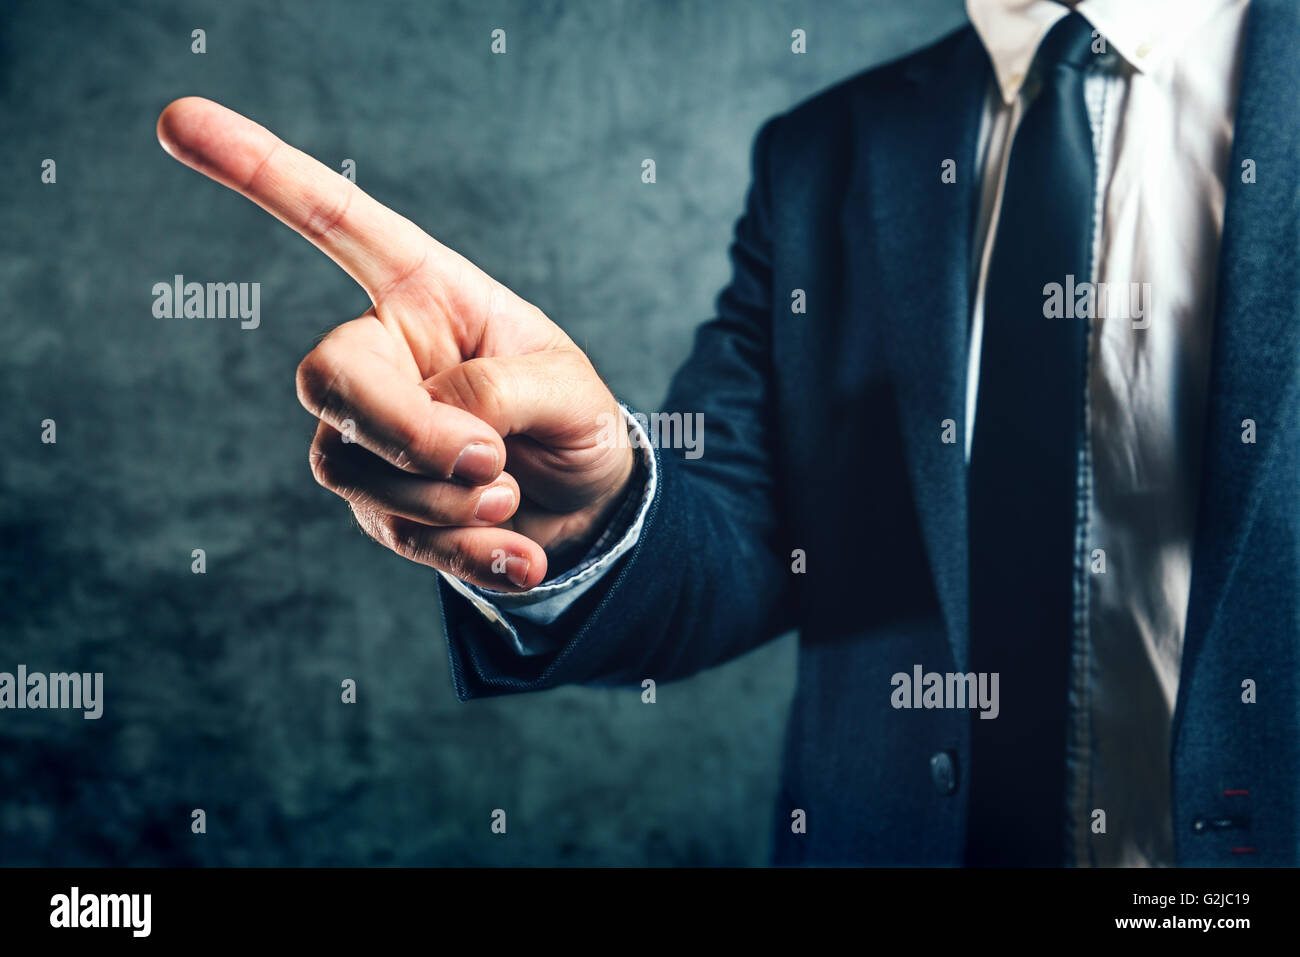 Getting fired from job, office manager showing way out with finger pointing to exit door. - Stock Image